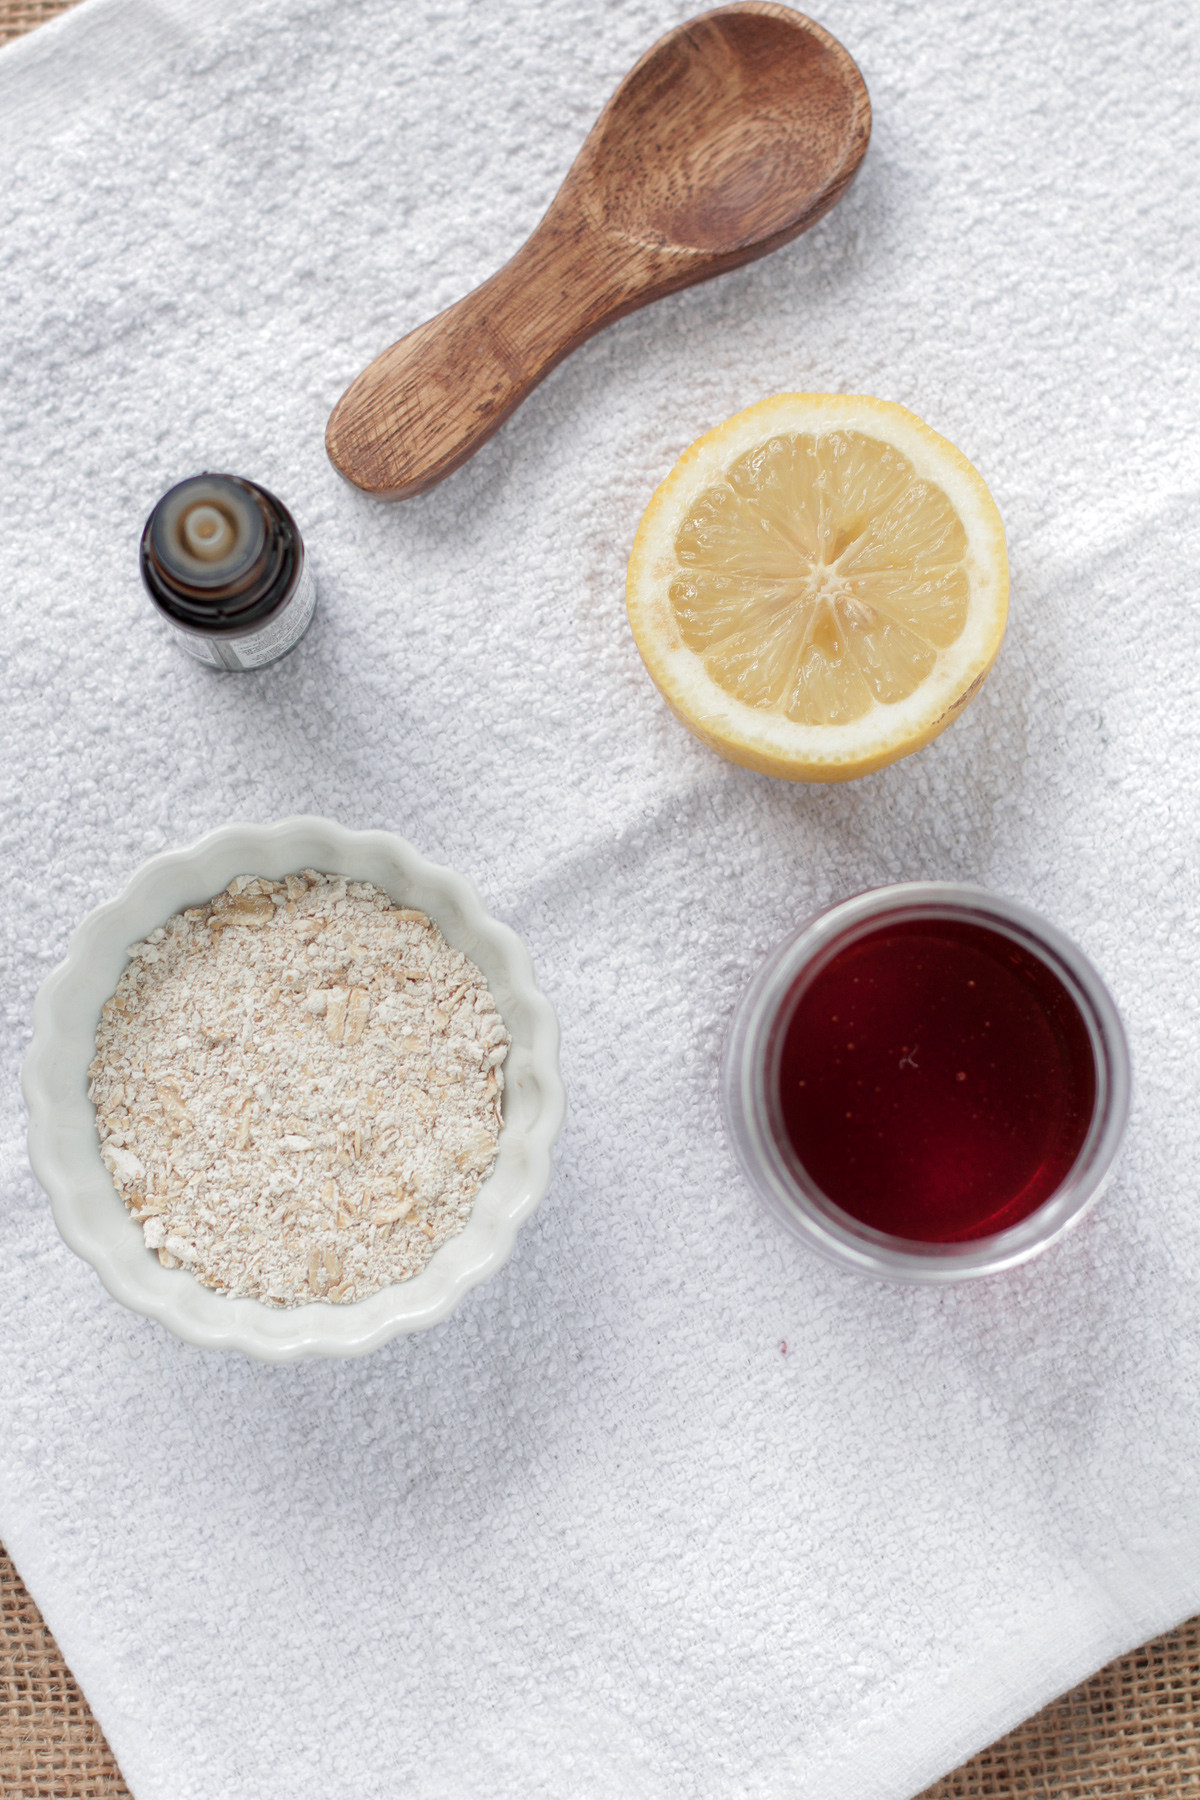 Best ideas about DIY Mask For Acne . Save or Pin Homemade Honey Oatmeal Acne Mask Live Simply Now.